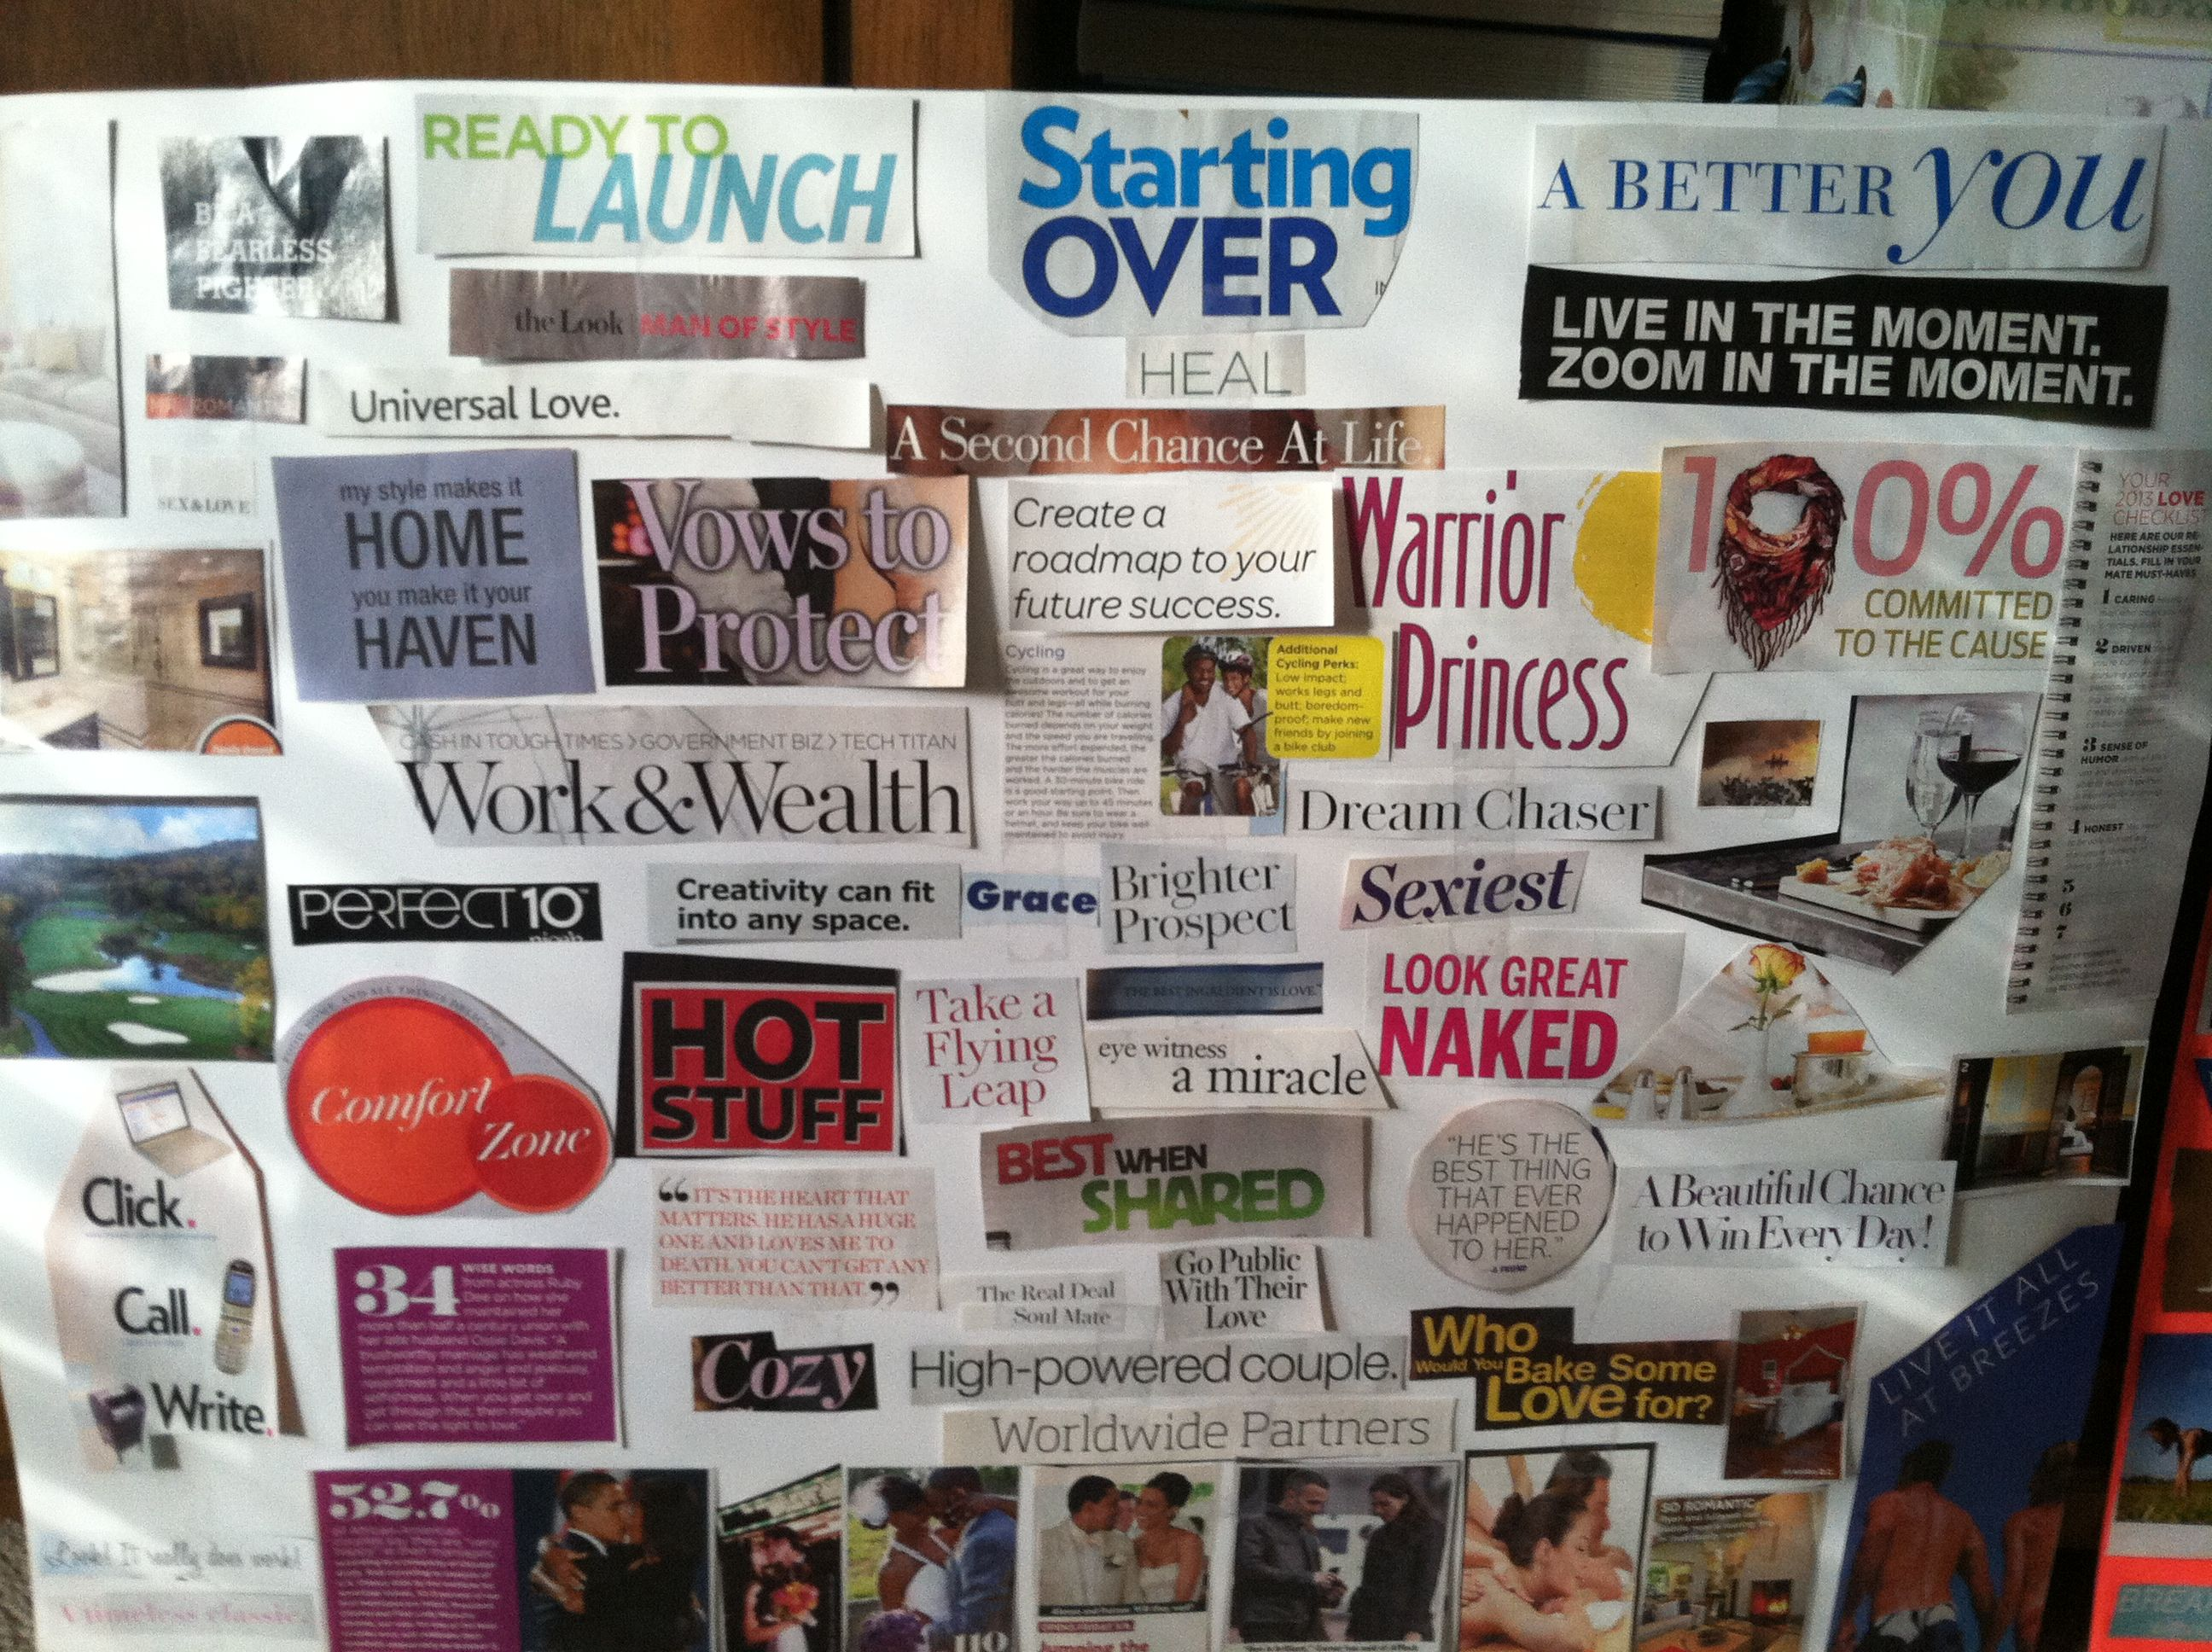 Vision board vision board dream board ideas pinterest